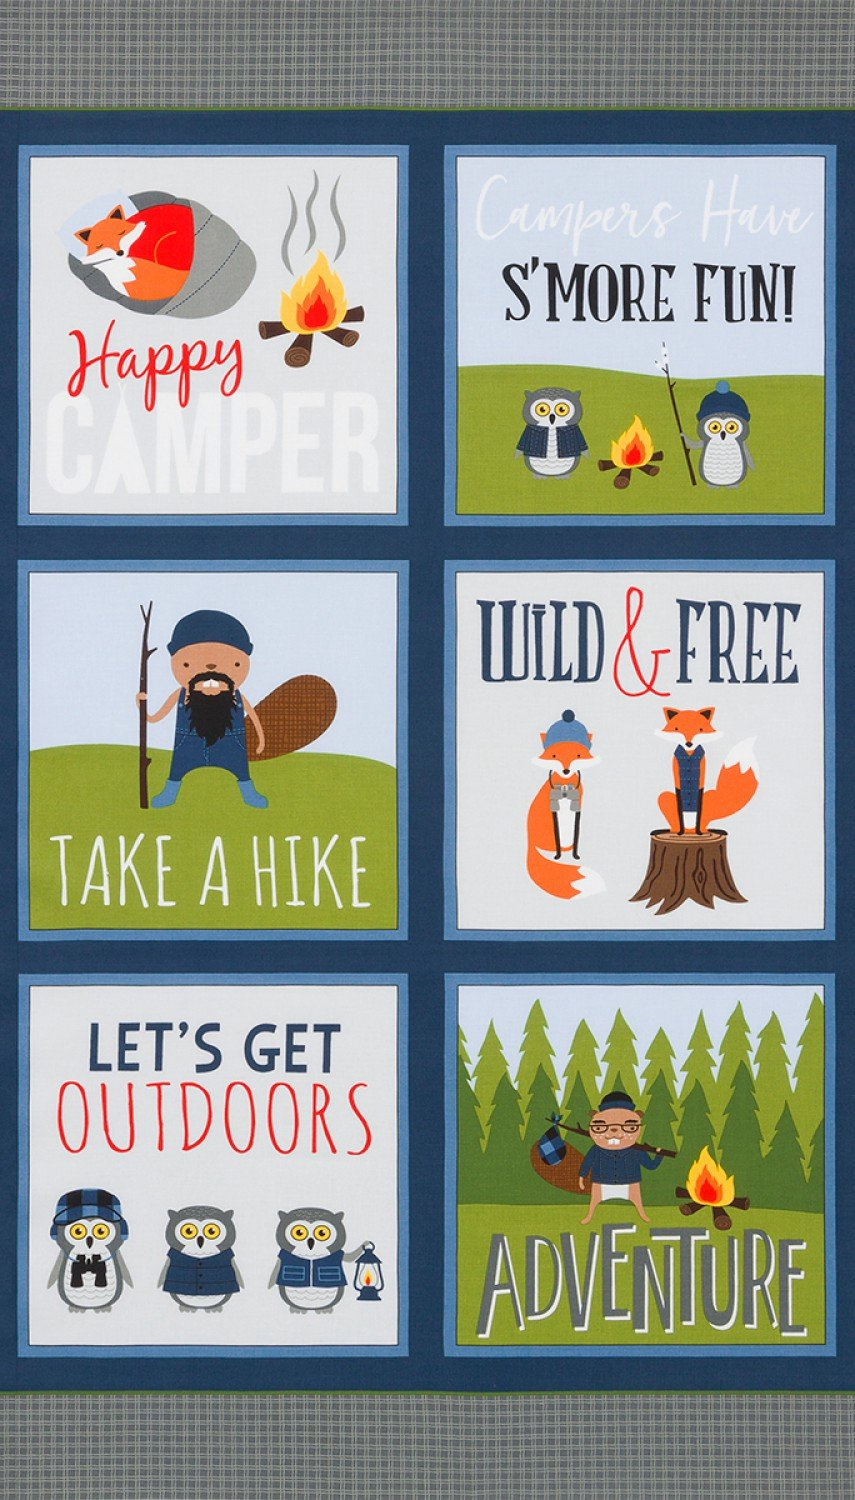 Campsite Critters - AHE-17624-73